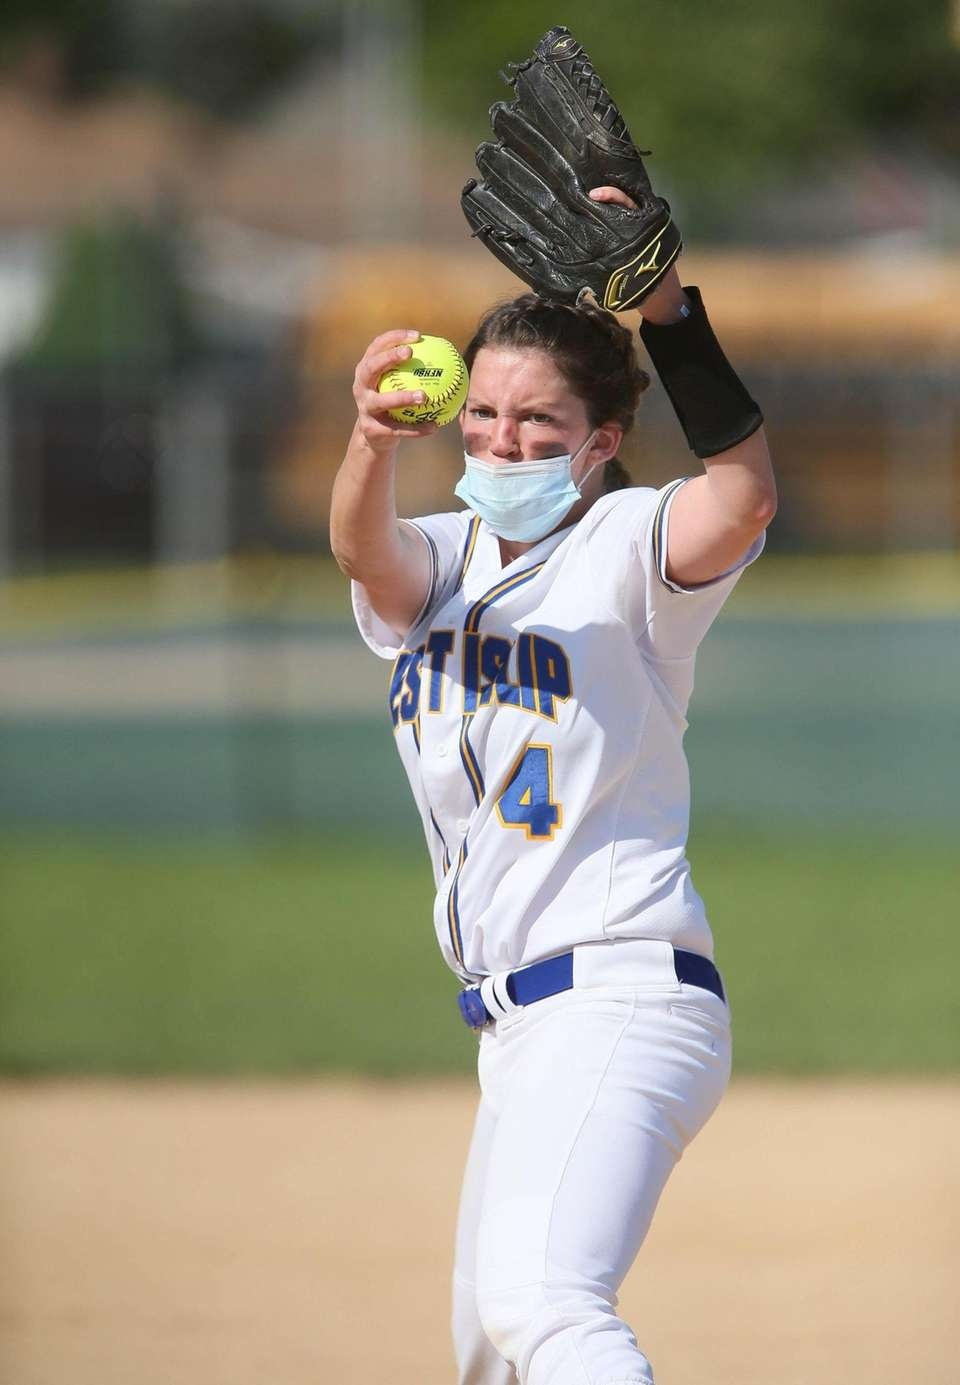 West Islip's Kayla Sauers (14) throws a pitch